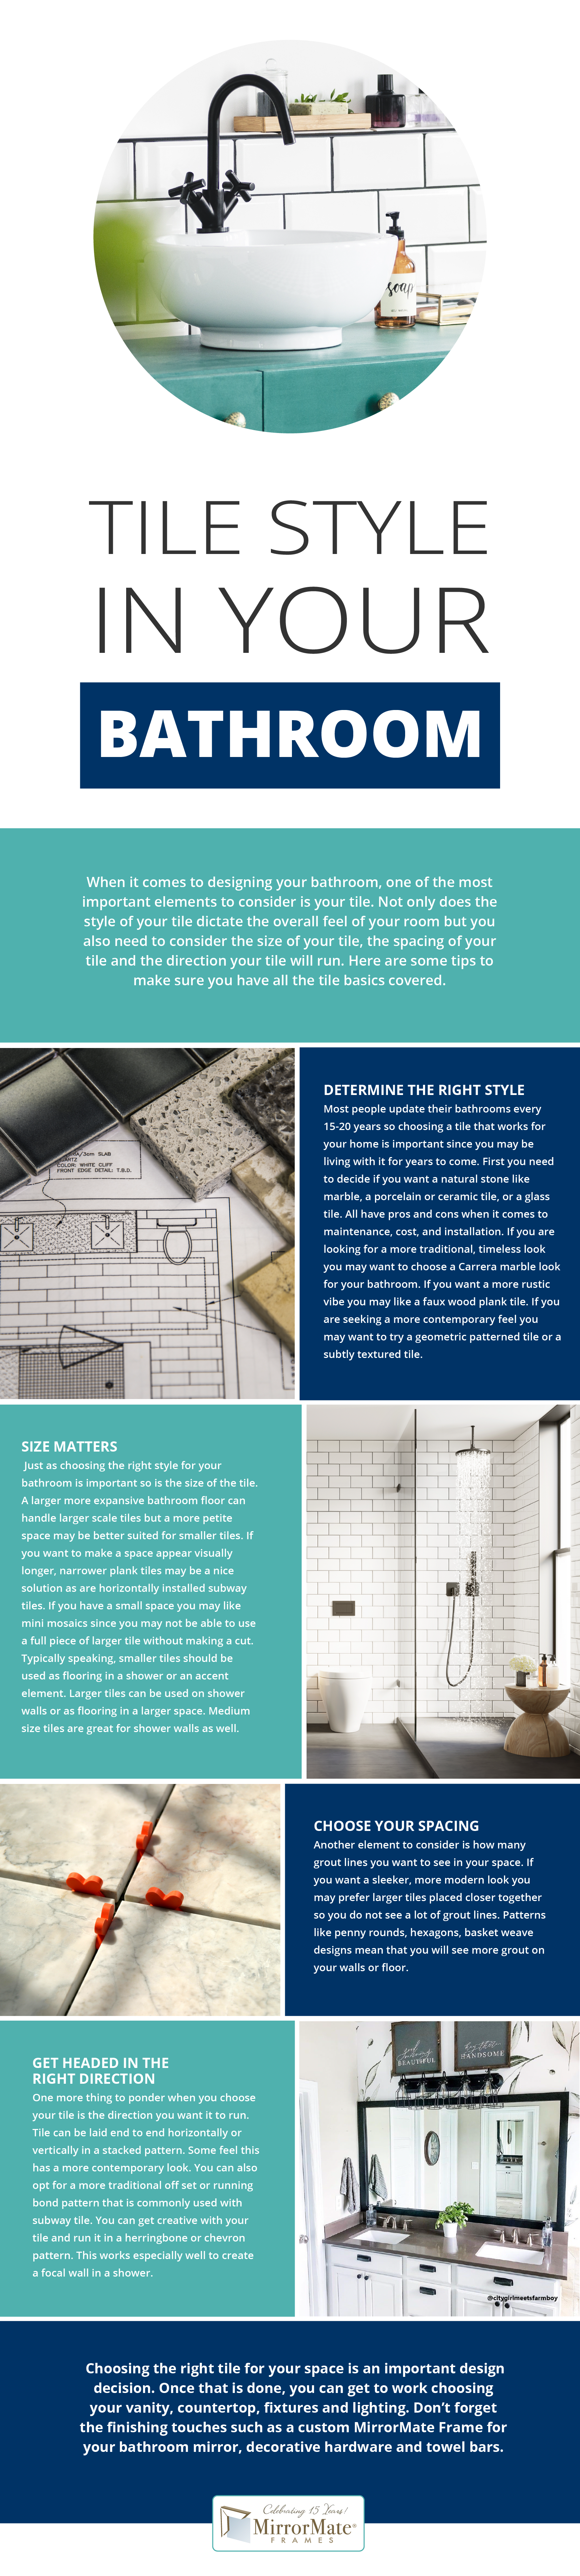 Tile Style in Your Bathroom Infographic